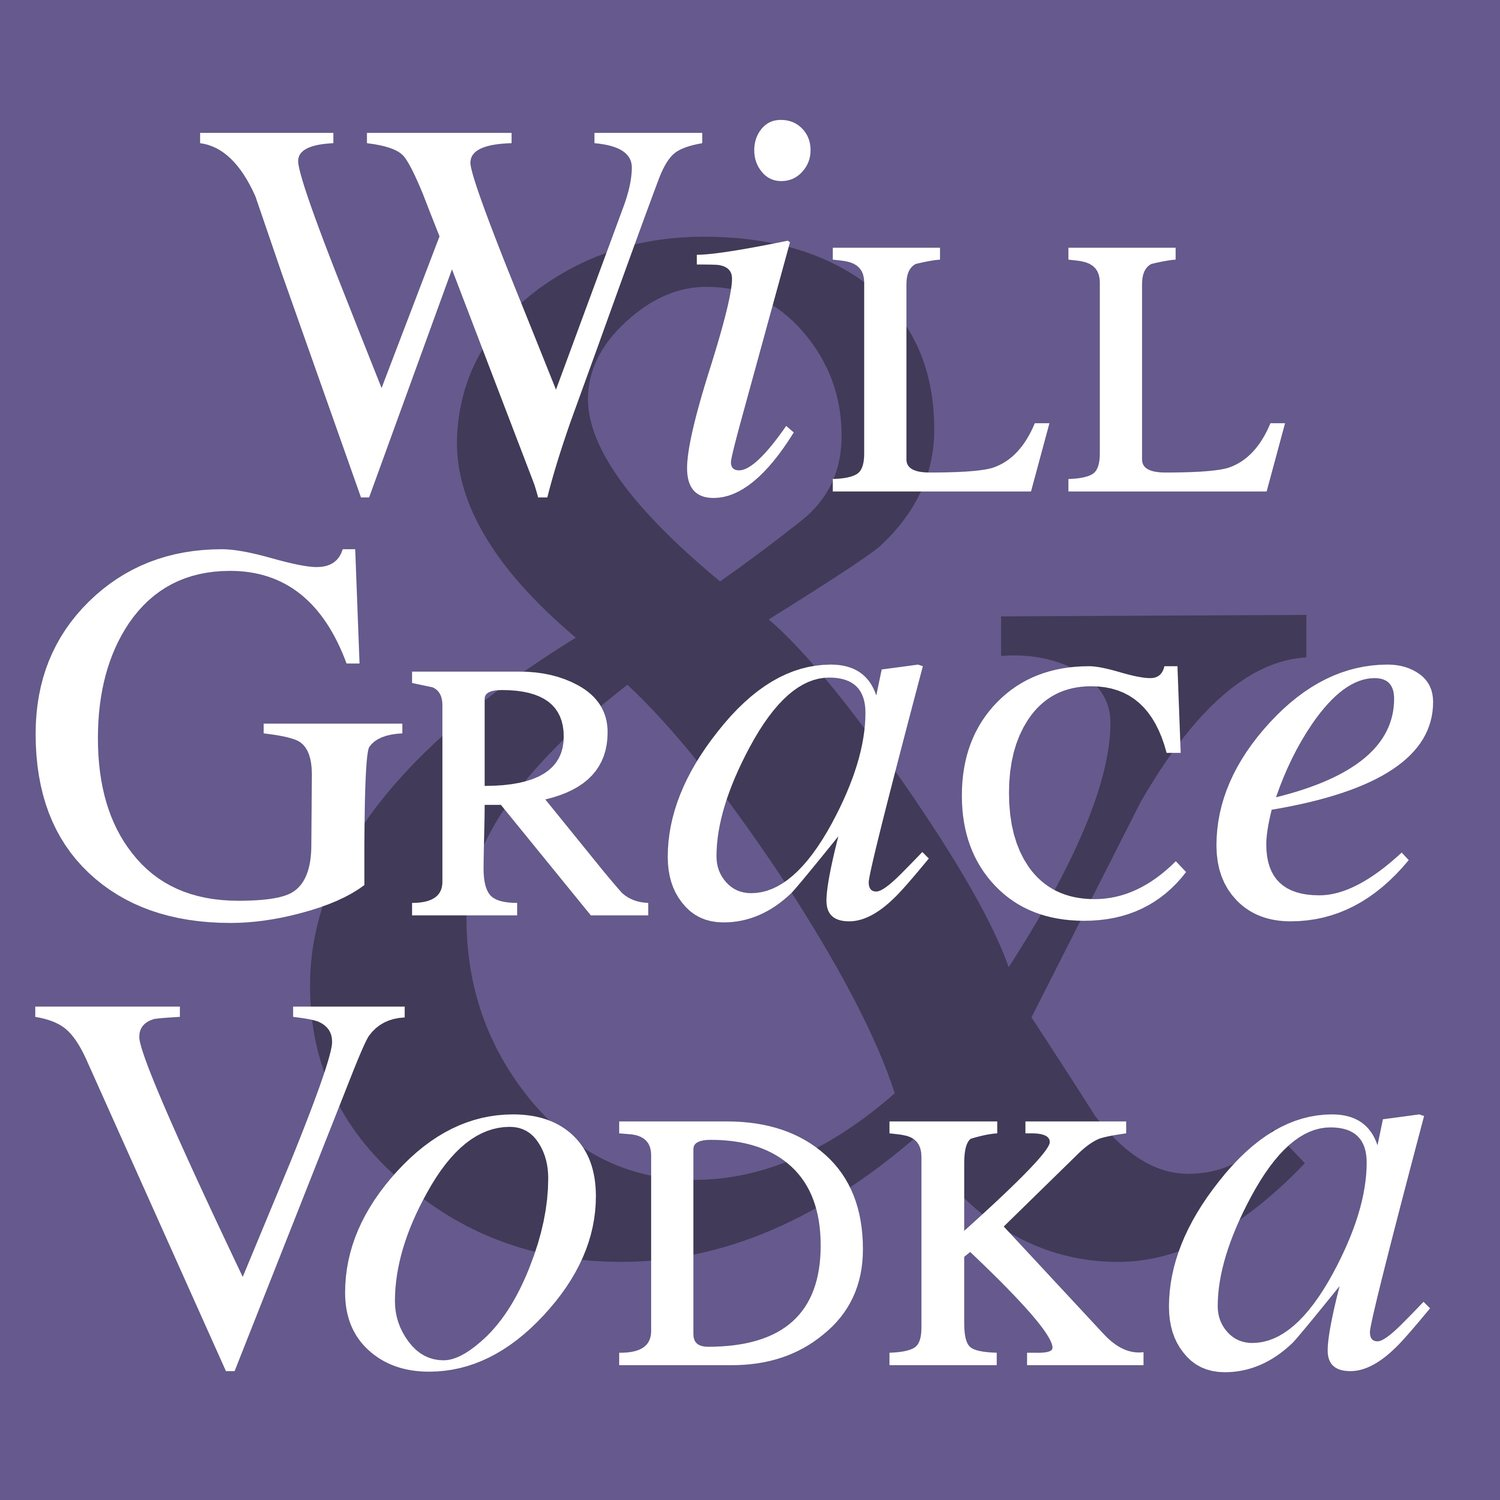 Will & Grace & Vodka